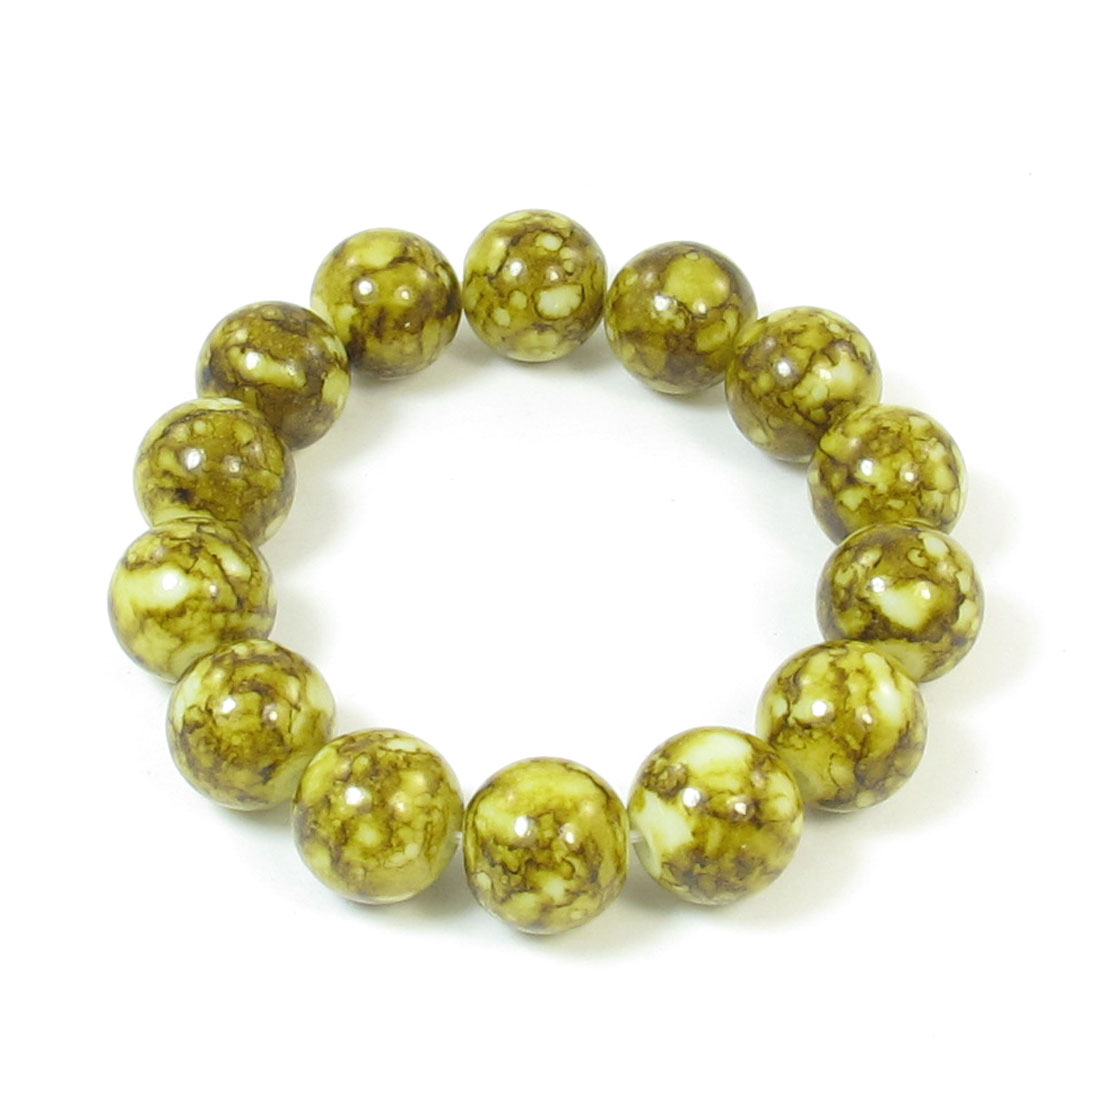 Olive Yellow Glass Round Beads Detail Elastic Wrist String Bracelet